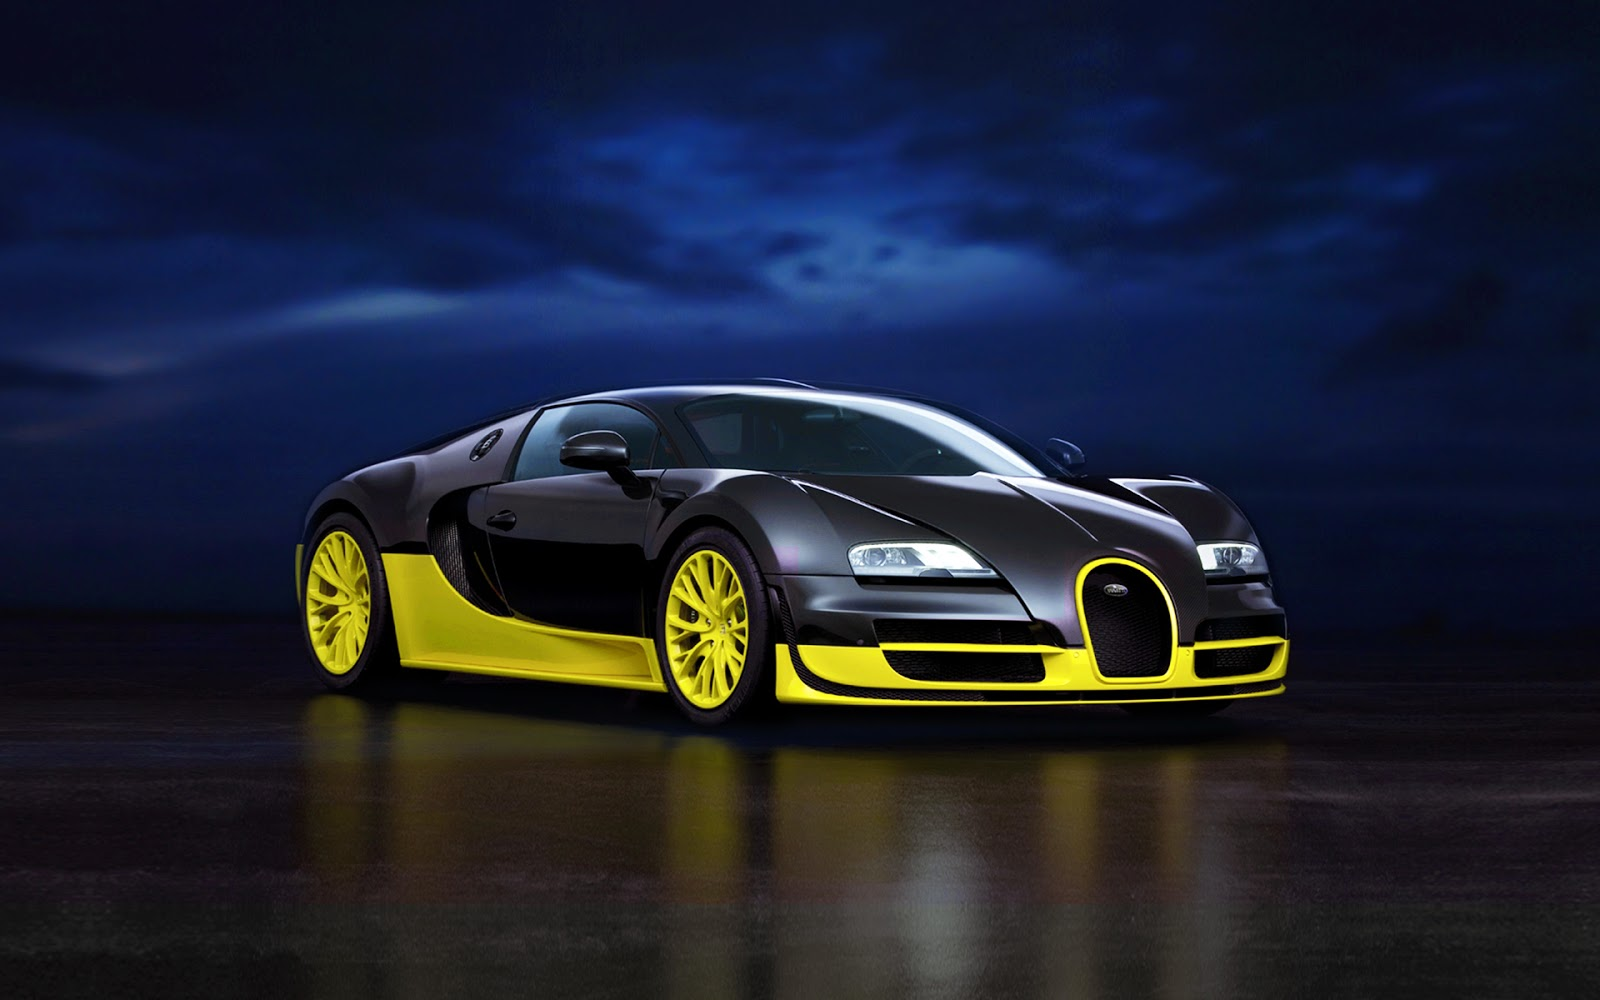 2014 bugatti veyron 16 4 super sport is a very high price reached 4 000 000 mycarzilla. Black Bedroom Furniture Sets. Home Design Ideas